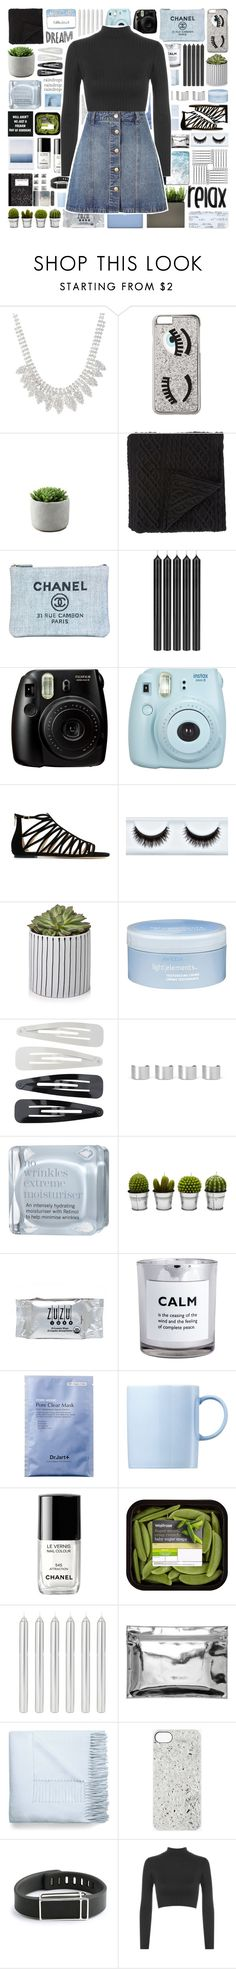 """""""Relax and dream"""" by stelbell ❤ liked on Polyvore featuring Chiara Ferragni, Morgan Collection, Chanel, Tom Dixon, Fujifilm, Jimmy Choo, Aveda, Forever 21, Maison Margiela and This Works"""